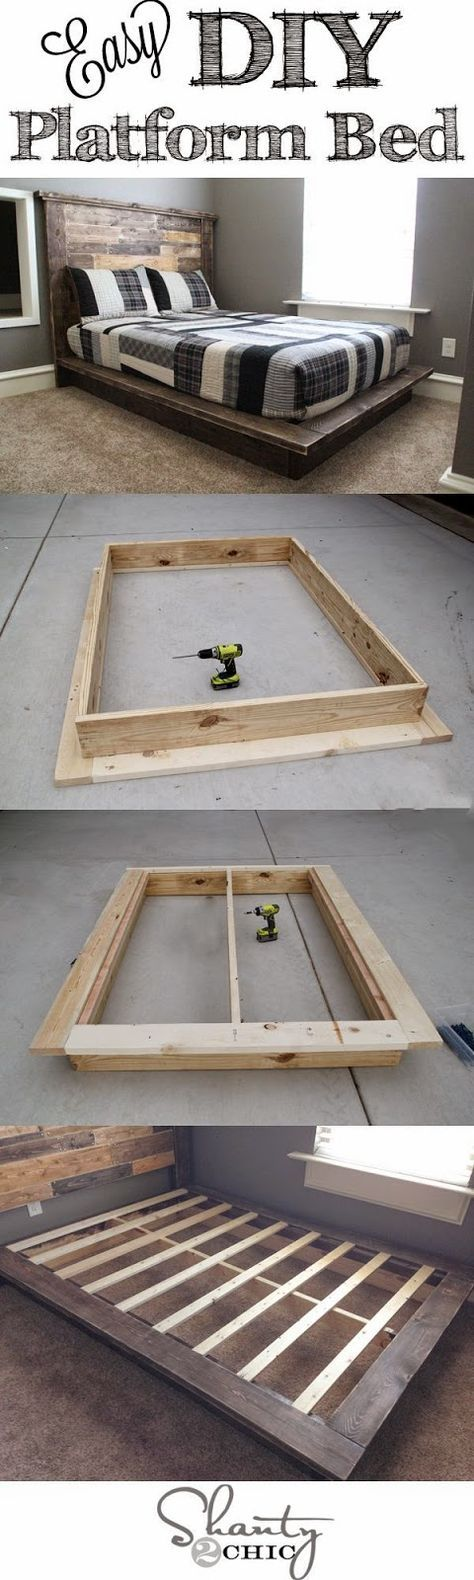 Best DIY Projects: Easy DIY Platform Bed that anyone can build!                                                                                                                                                                                 More